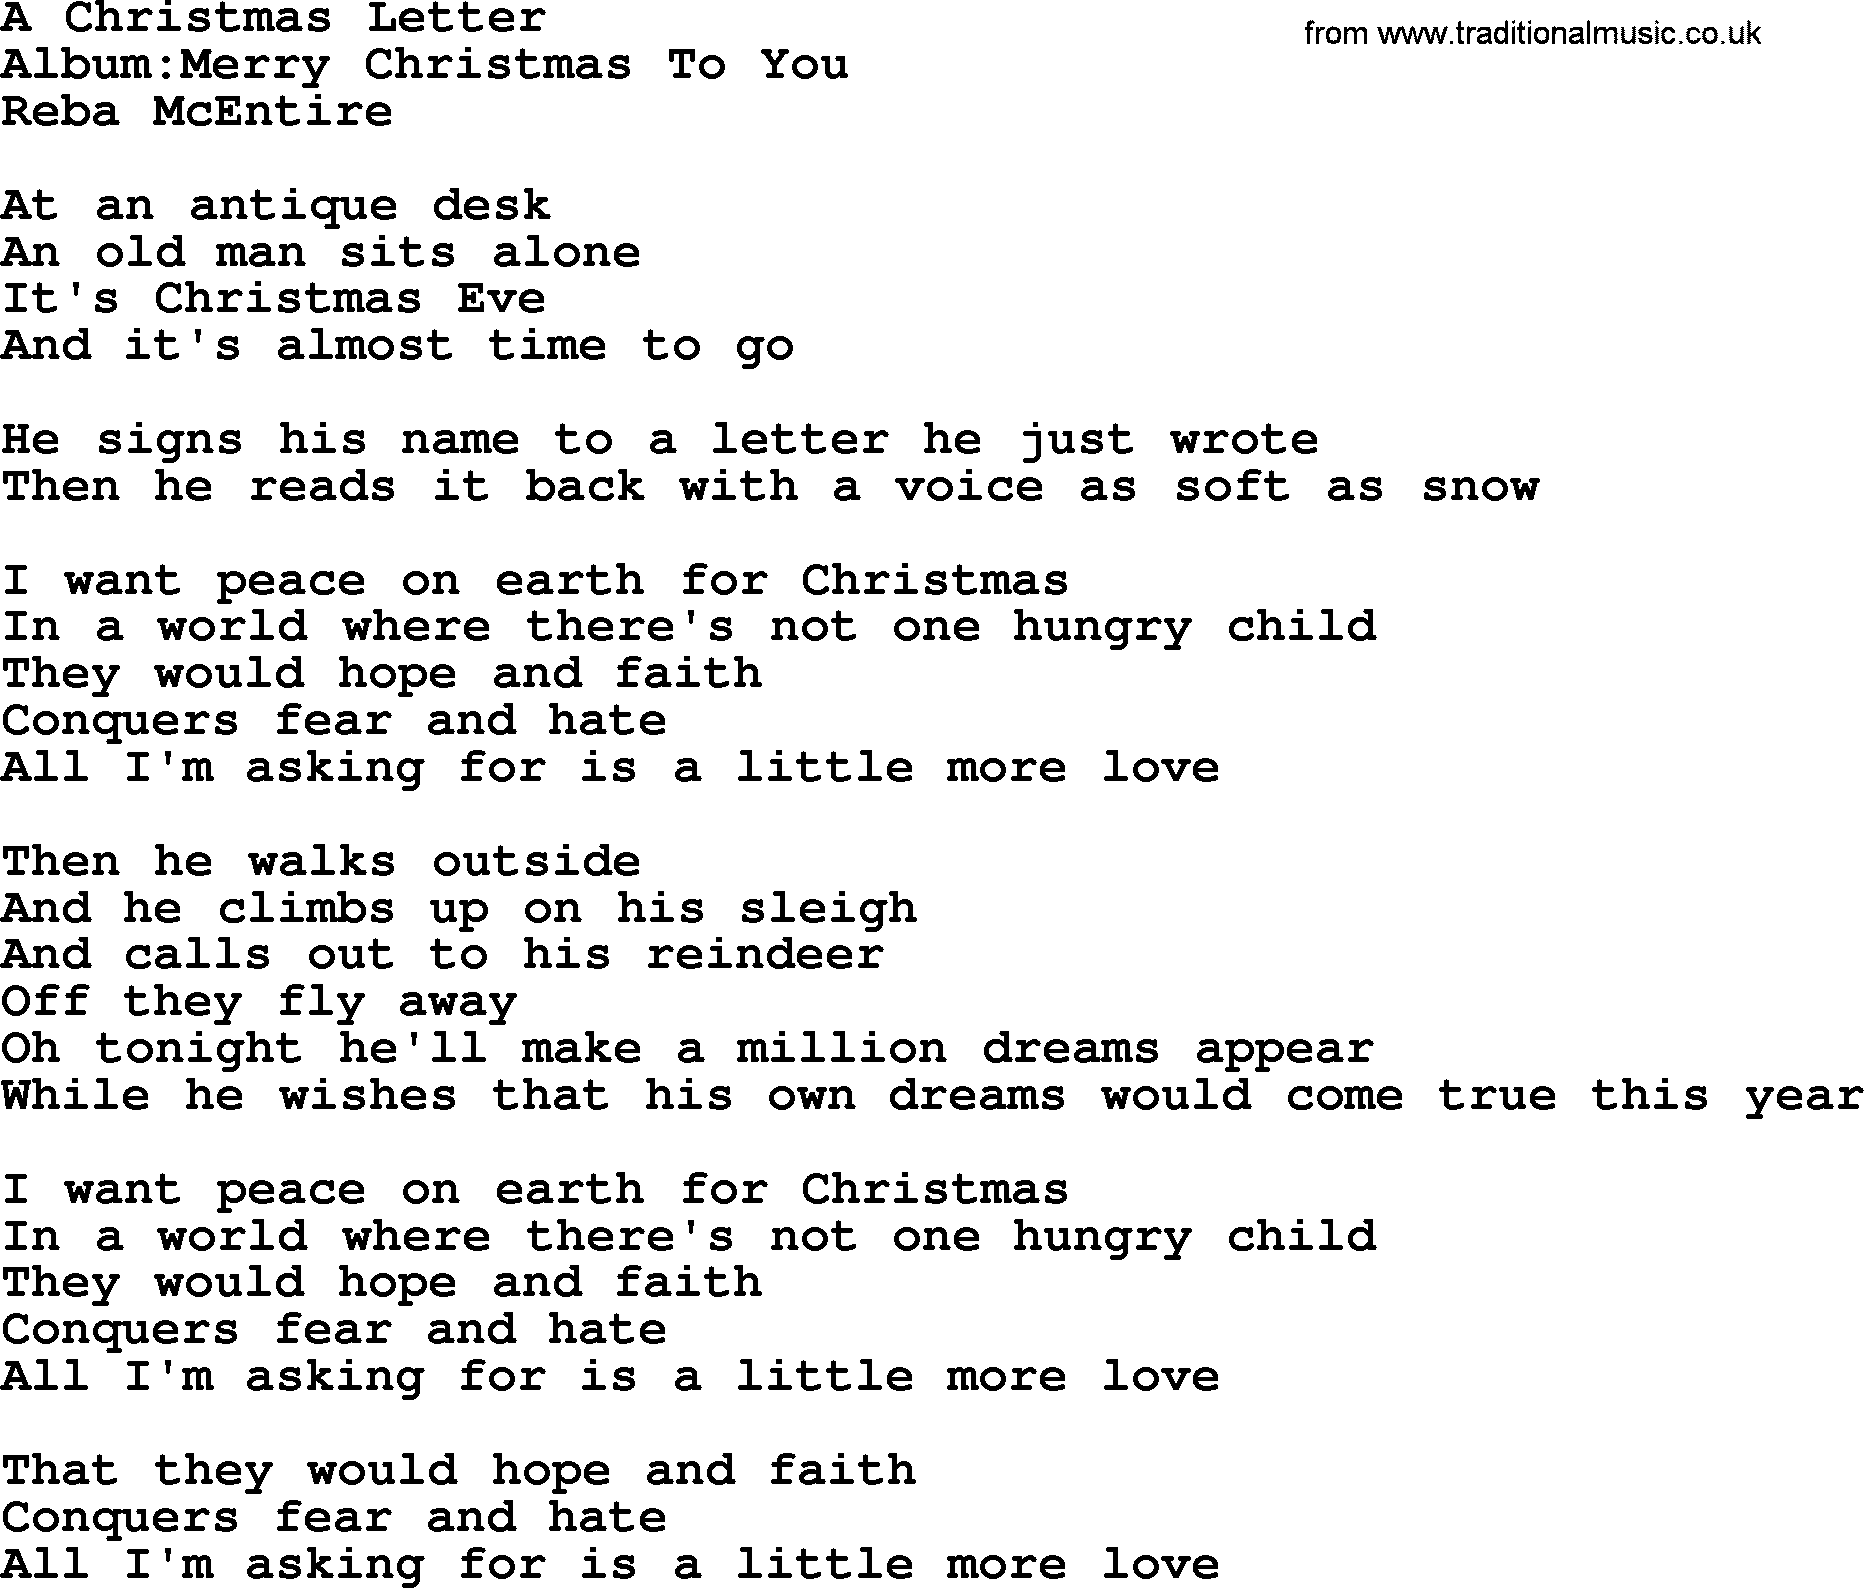 A Christmas Letter, by Reba McEntire - lyrics